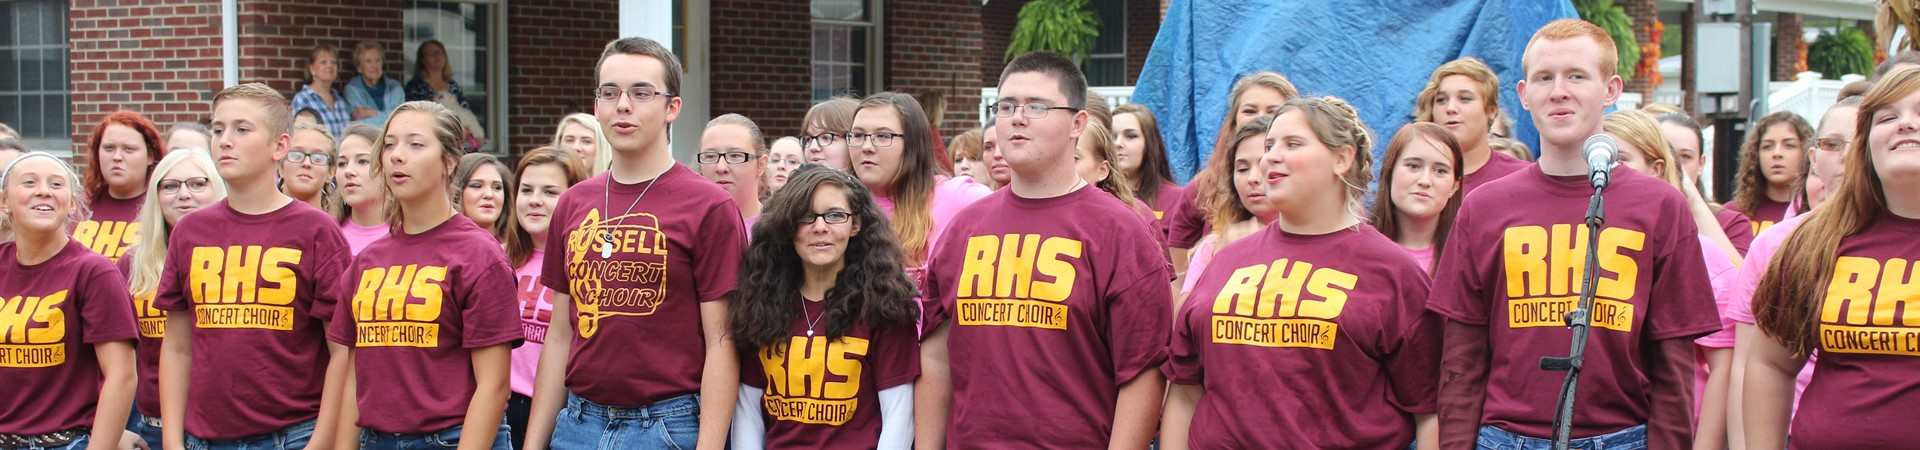 Choir performs at Greenup Old Fashion Days